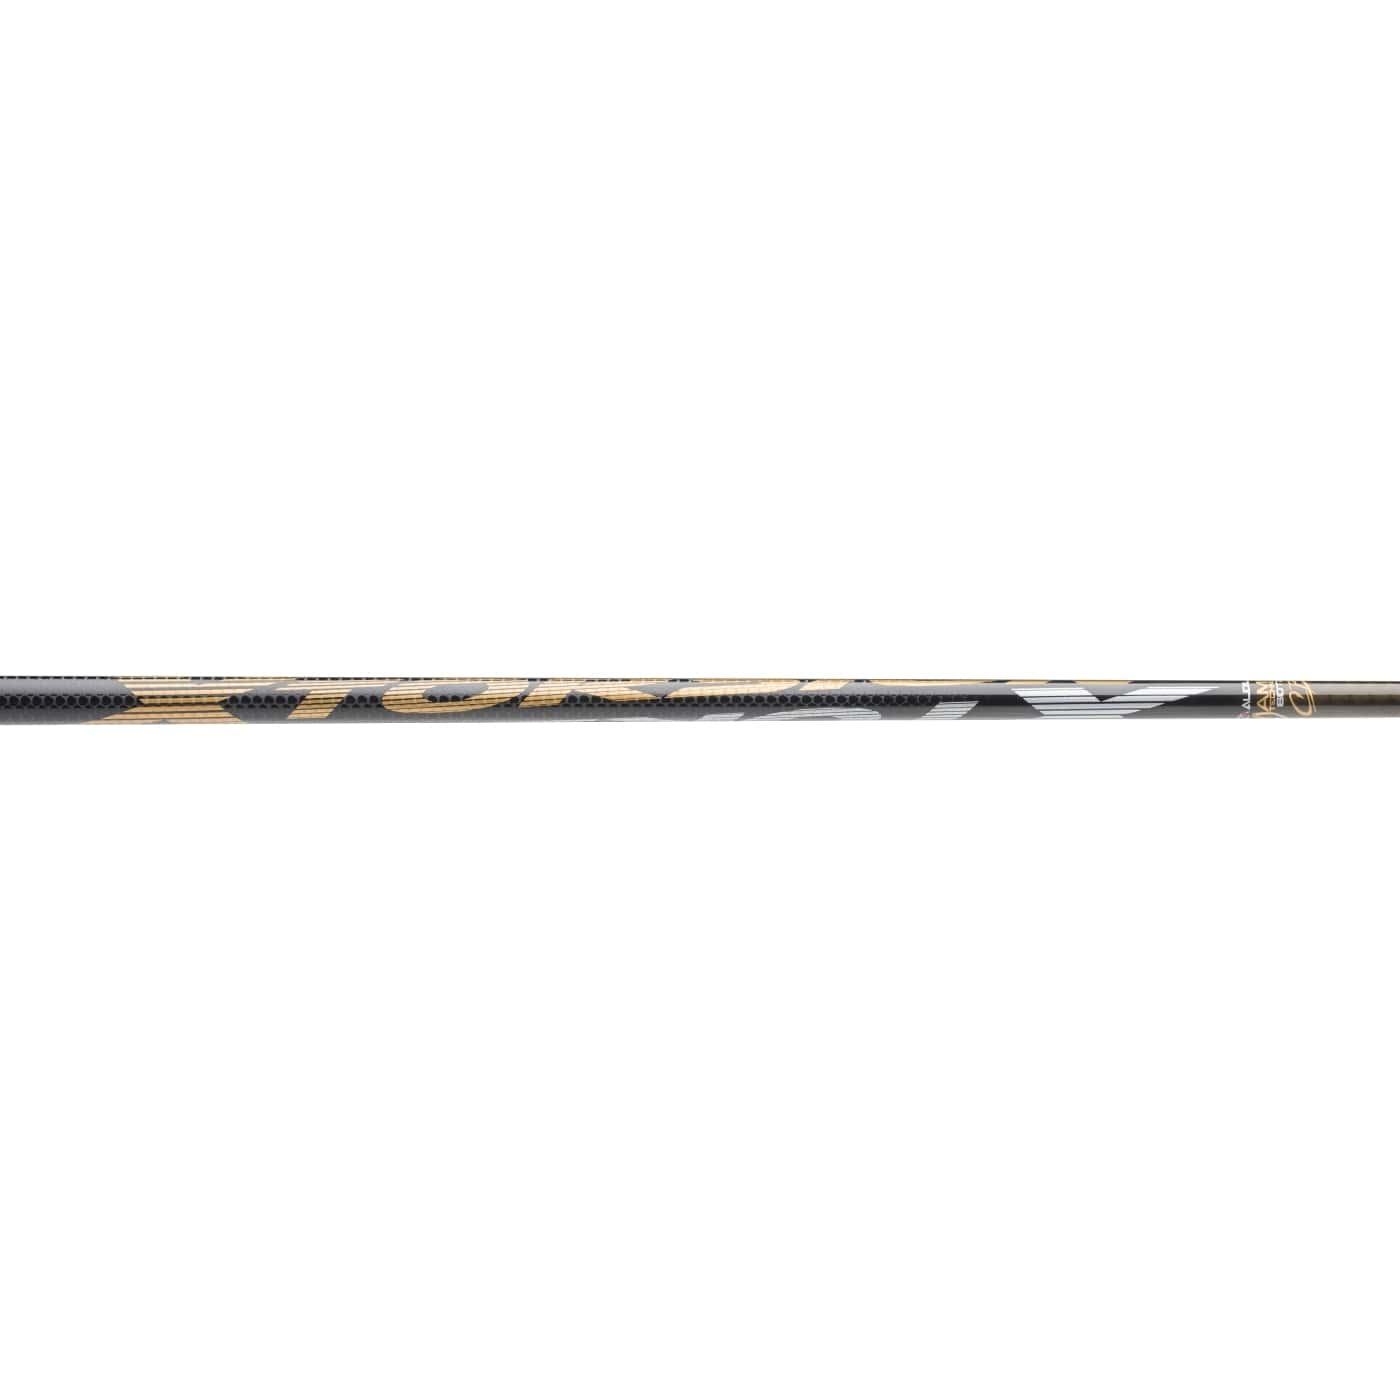 Aldila XTORSION Copper Graphite Wood Shaft